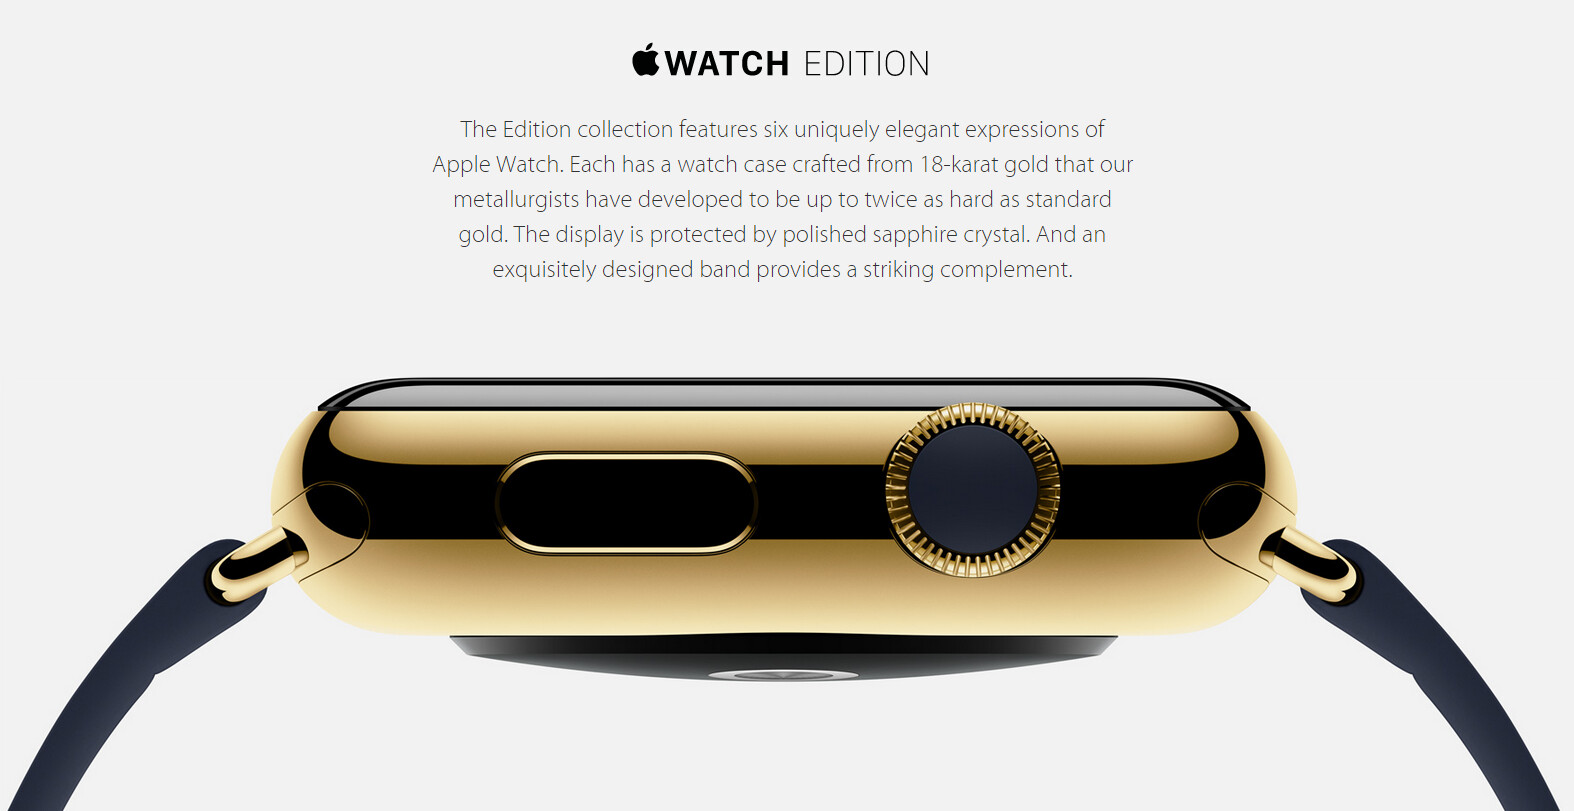 Apple Watch release date pegged for March 2015